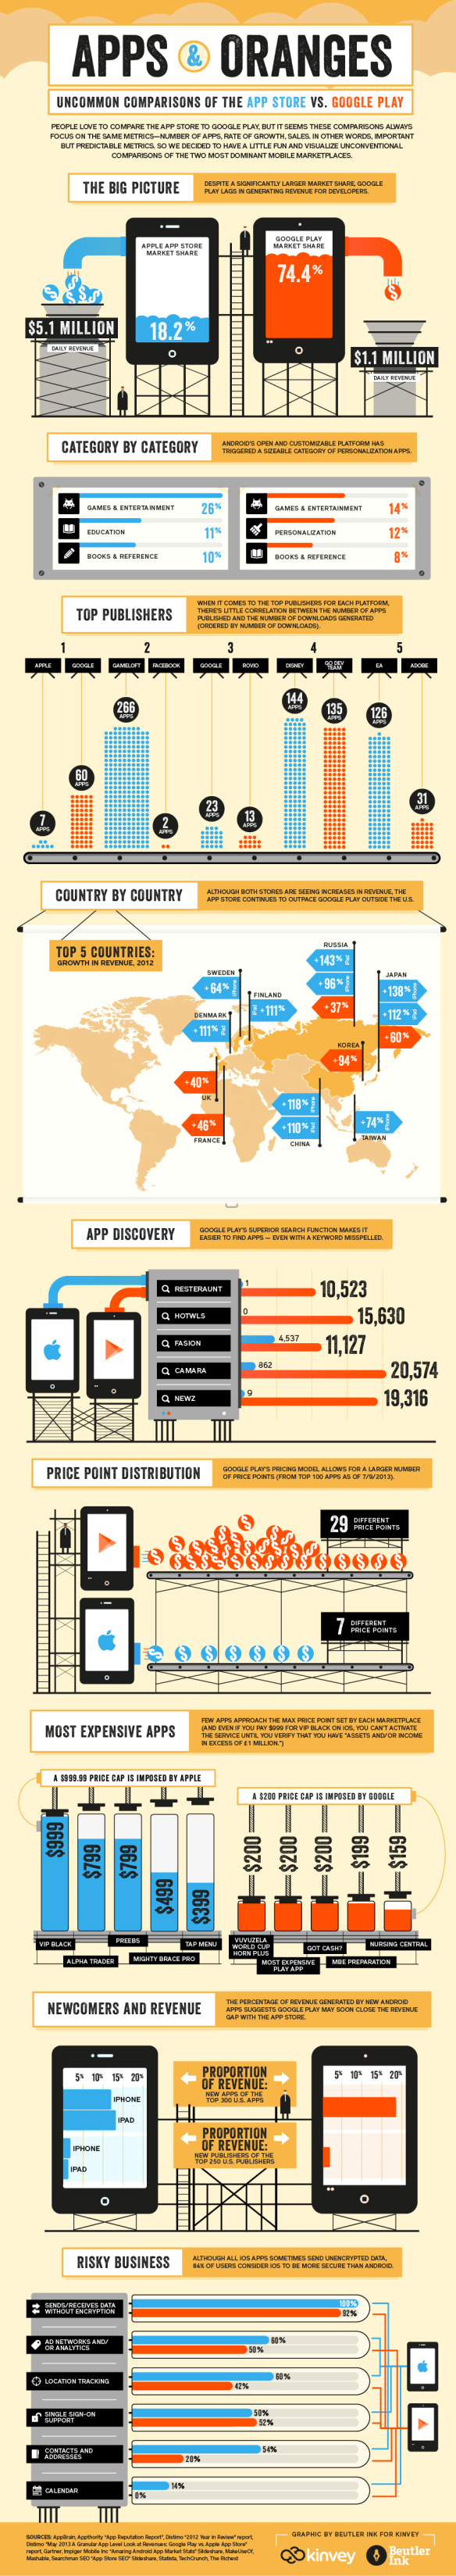 016. Android infographics